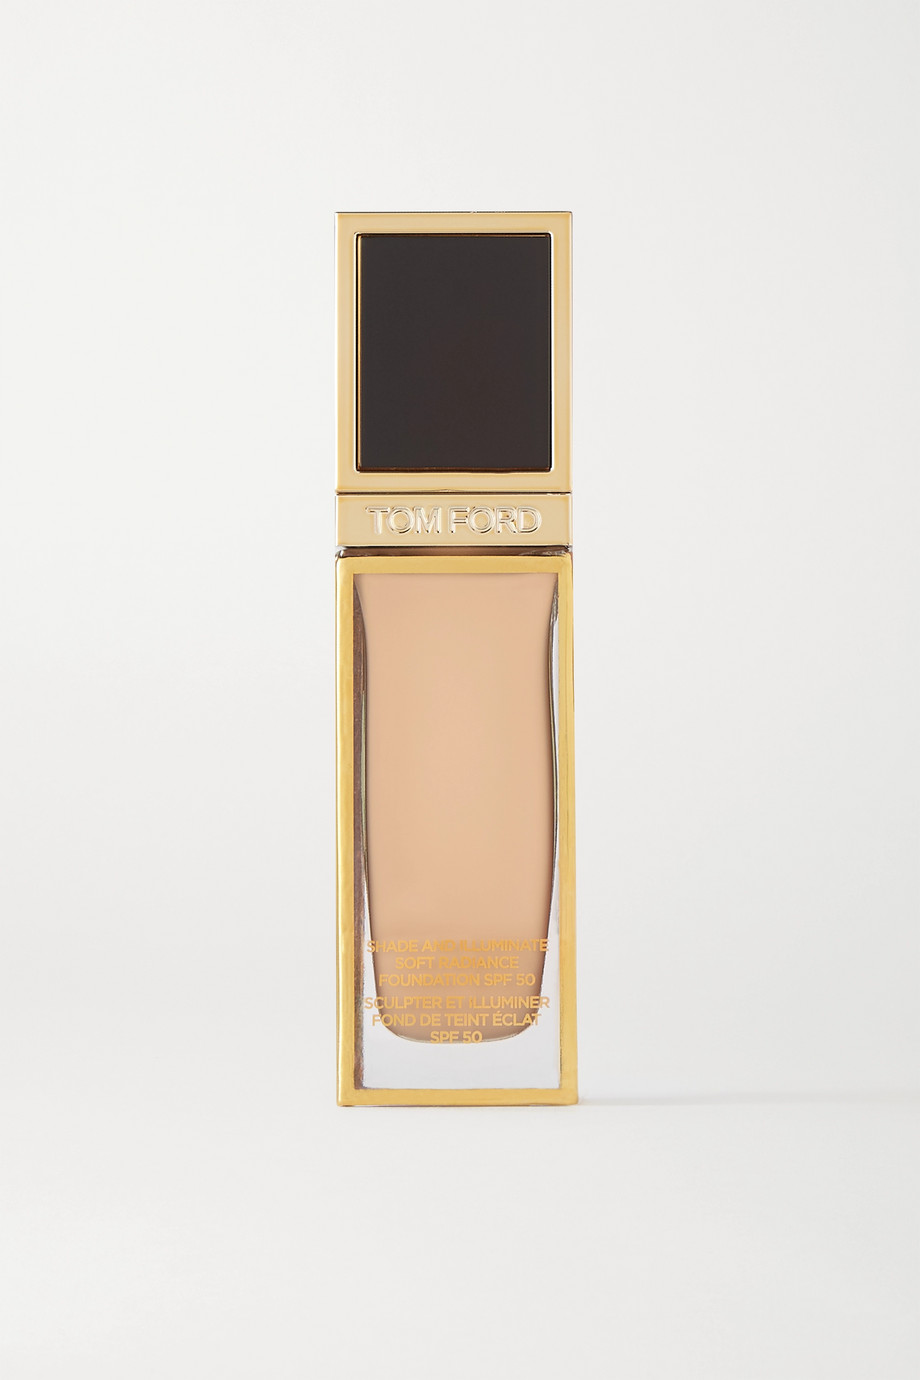 TOM FORD BEAUTY Shade and Illuminate Soft Radiance Foundation SPF50 - 2.0 Buff, 30ml